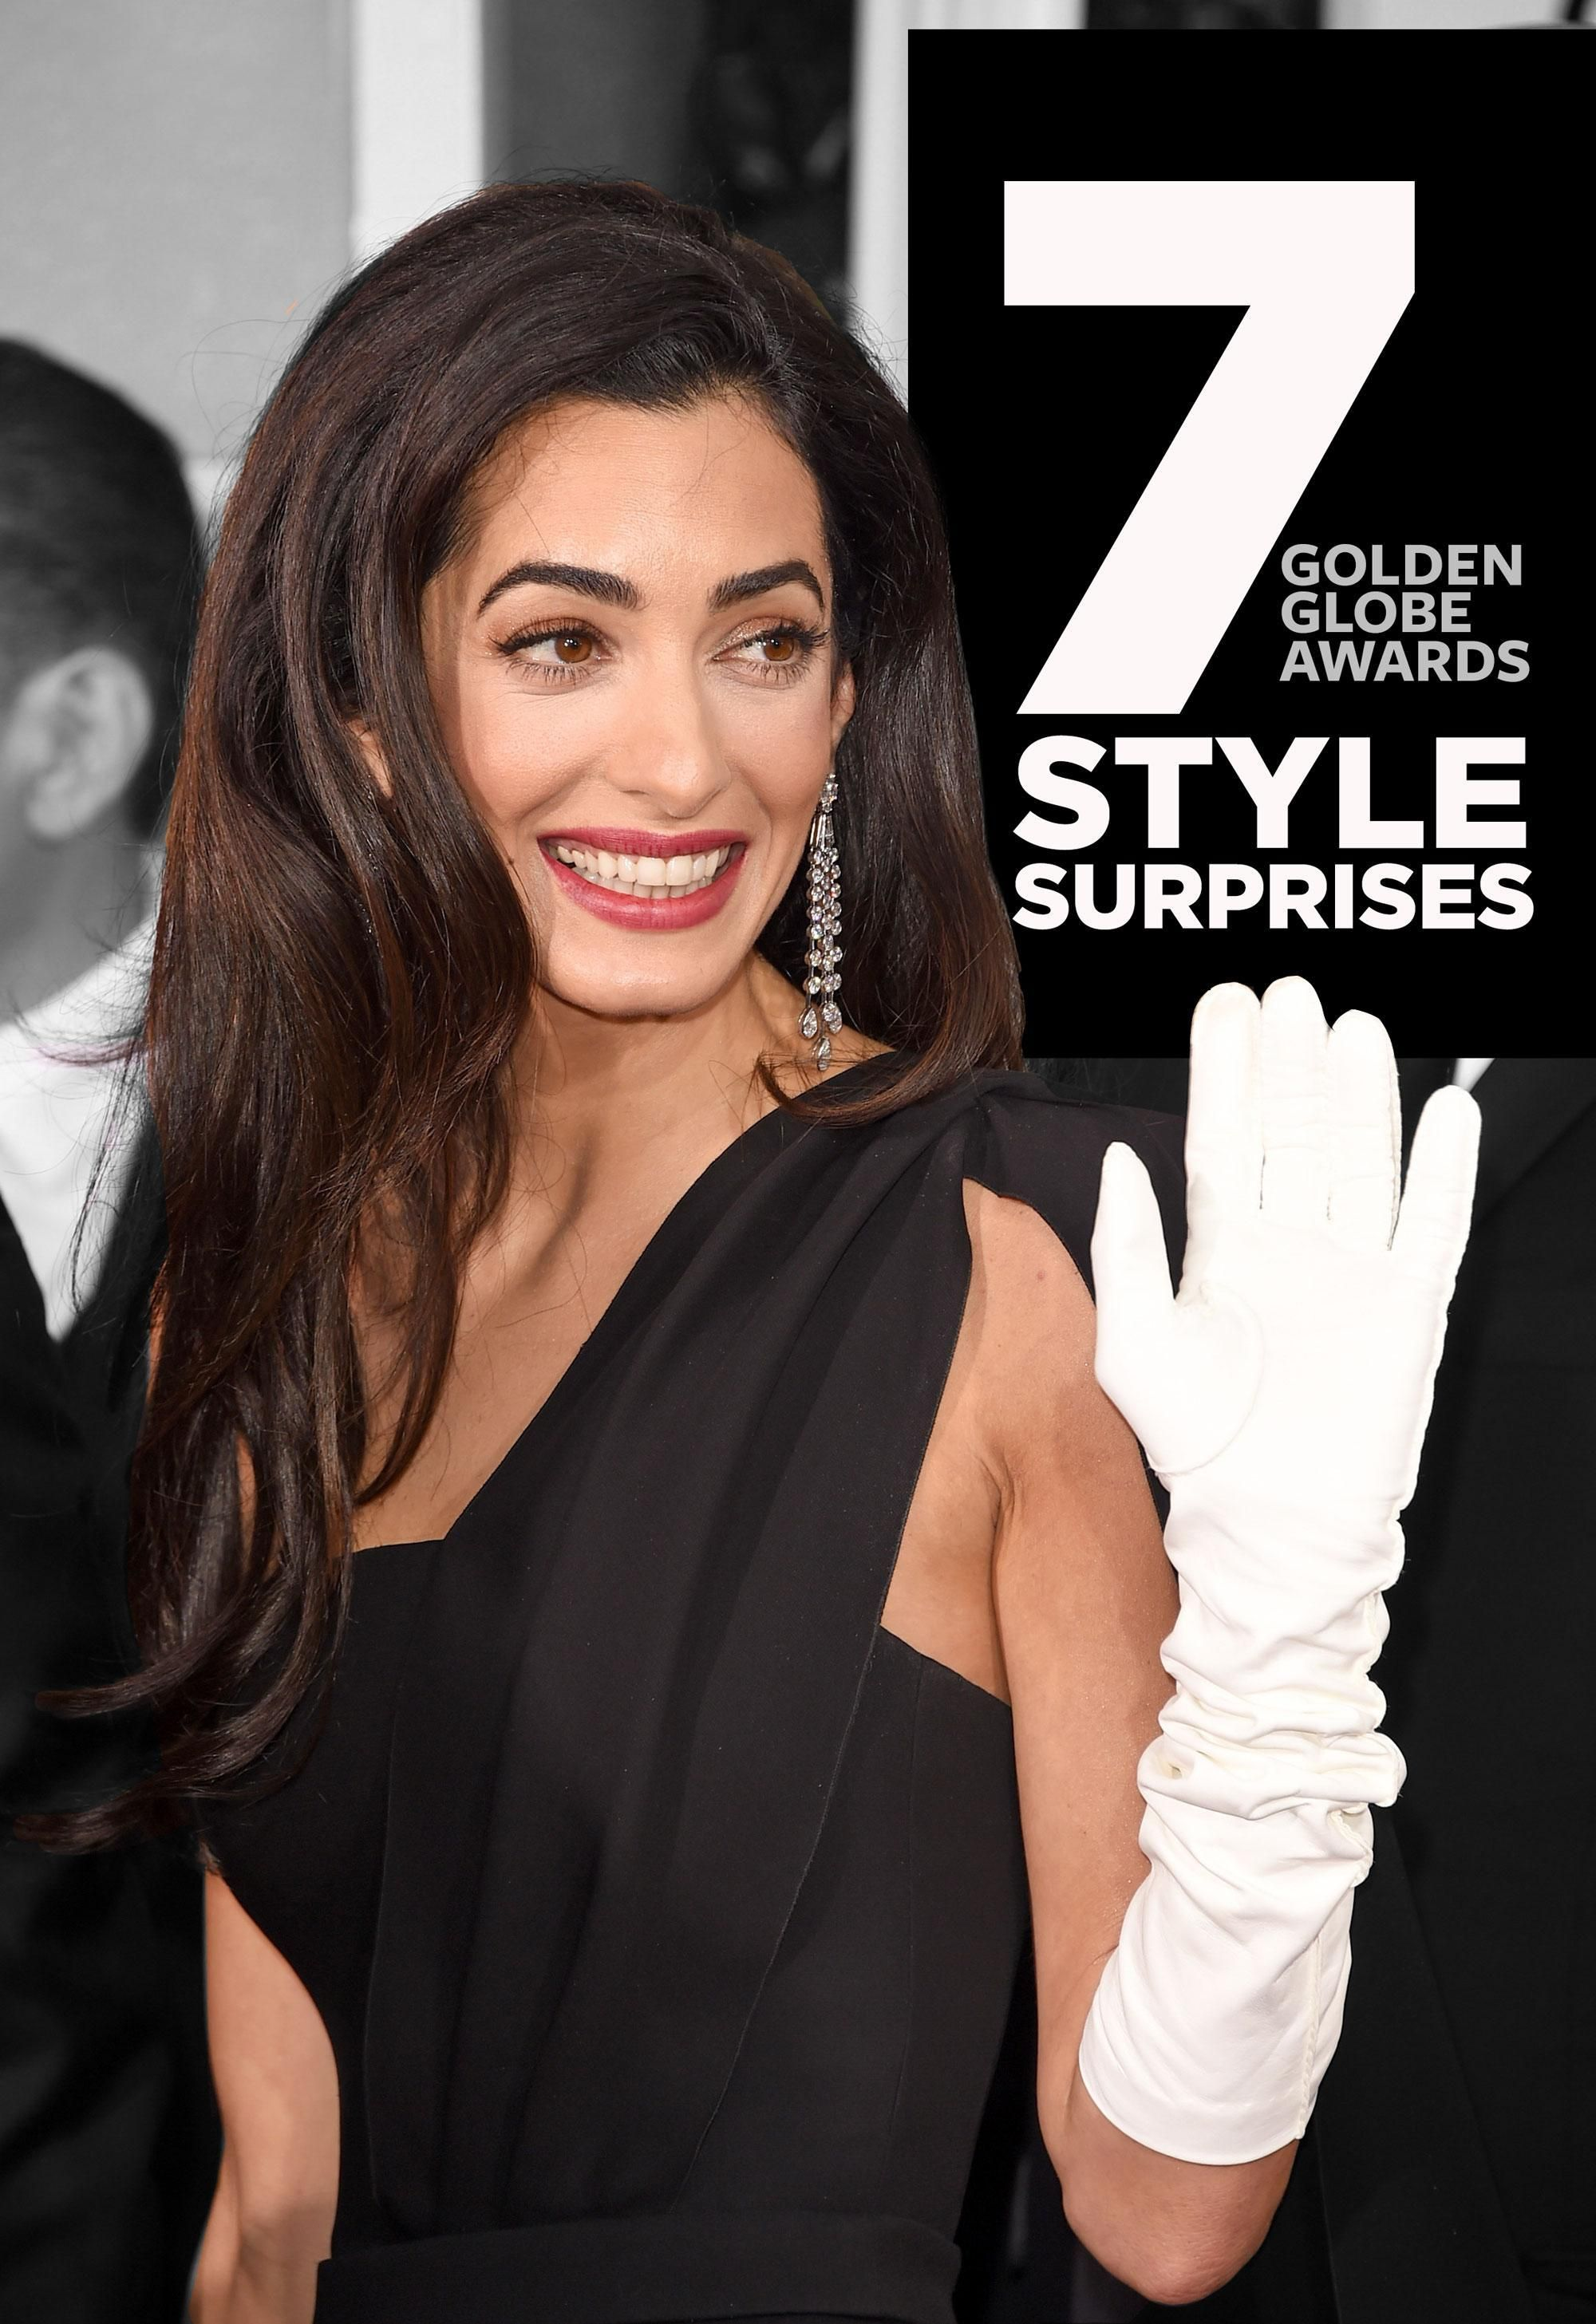 Black gloves for gown - Golden Globes 2015 Style Surprises Amal Clooney S Gloves Jennifer Aniston S Updo More